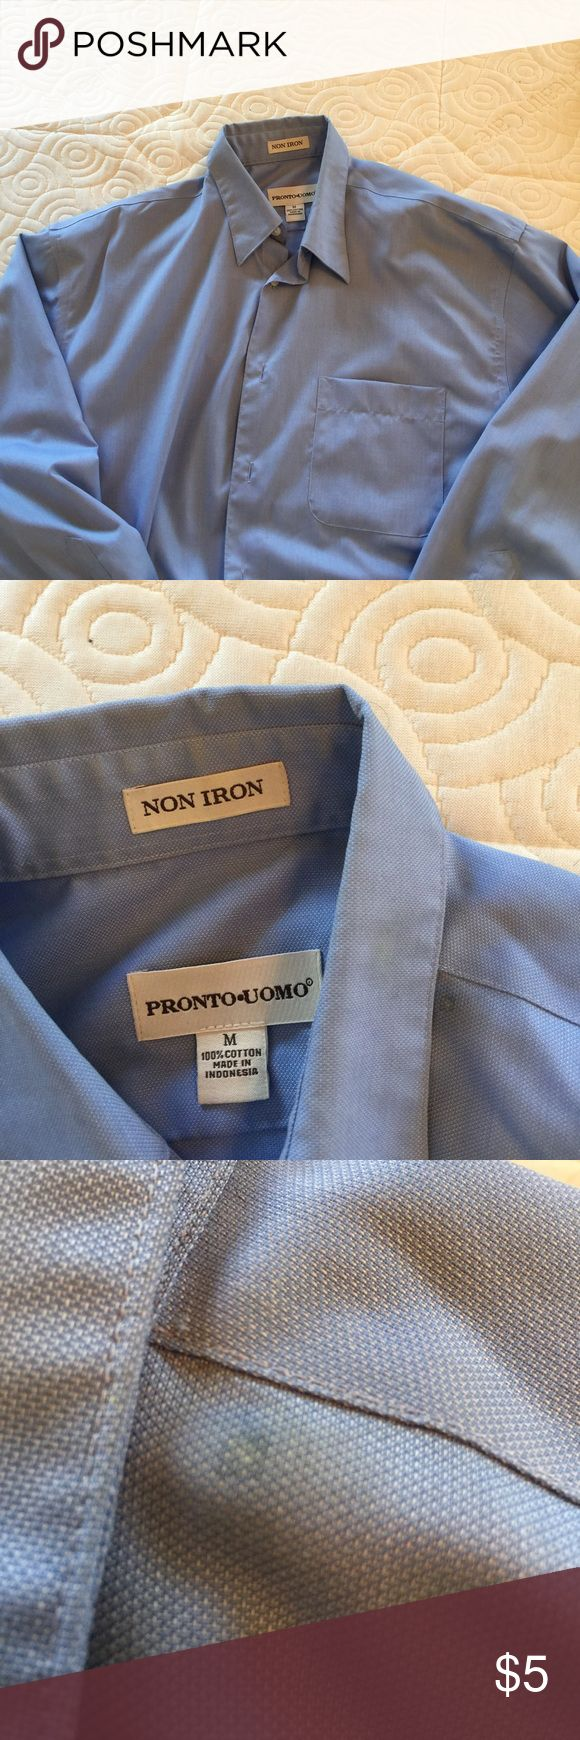 Pronto Uomo light blue dress shirt.  Size M Nice cotton non iron Pronto Uomo dress shirt in light blue.  Small spot on left shoulder near collar pictured in photo.  Otherwise good condition. Pronto Uomo Shirts Dress Shirts